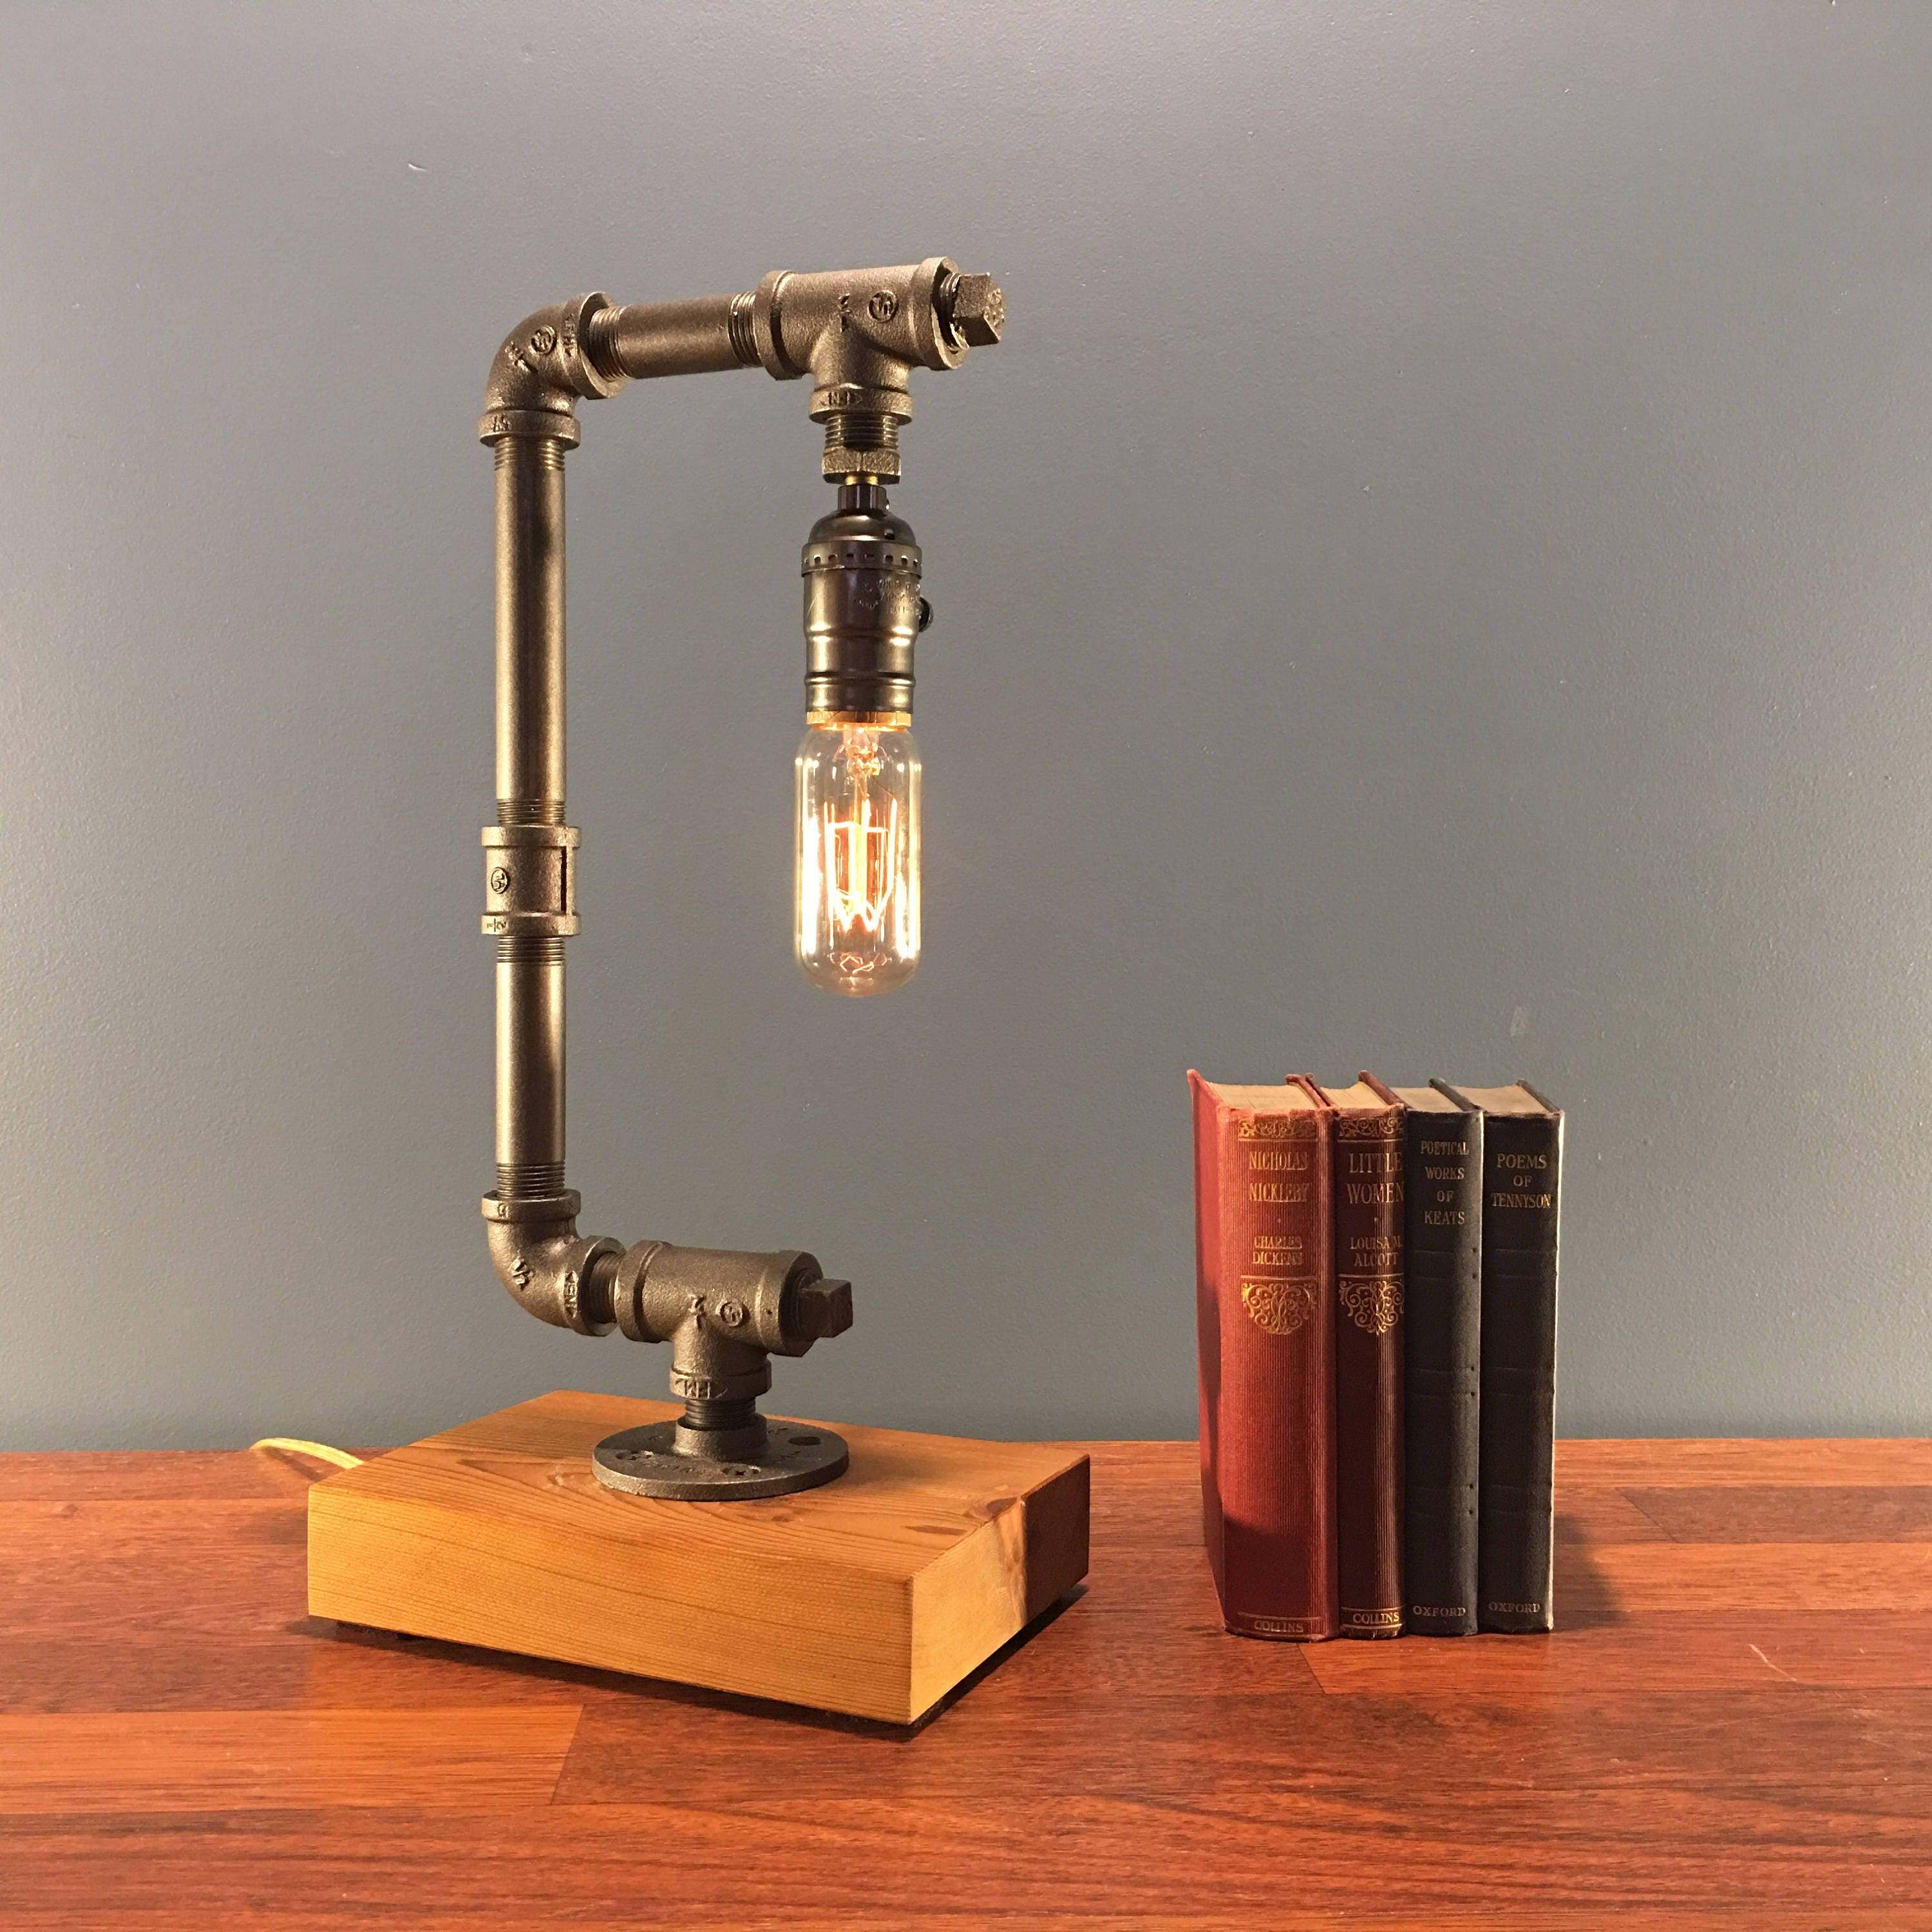 tutorial spaces designed lamp house my tiny for copper pipe small diy design iron custom